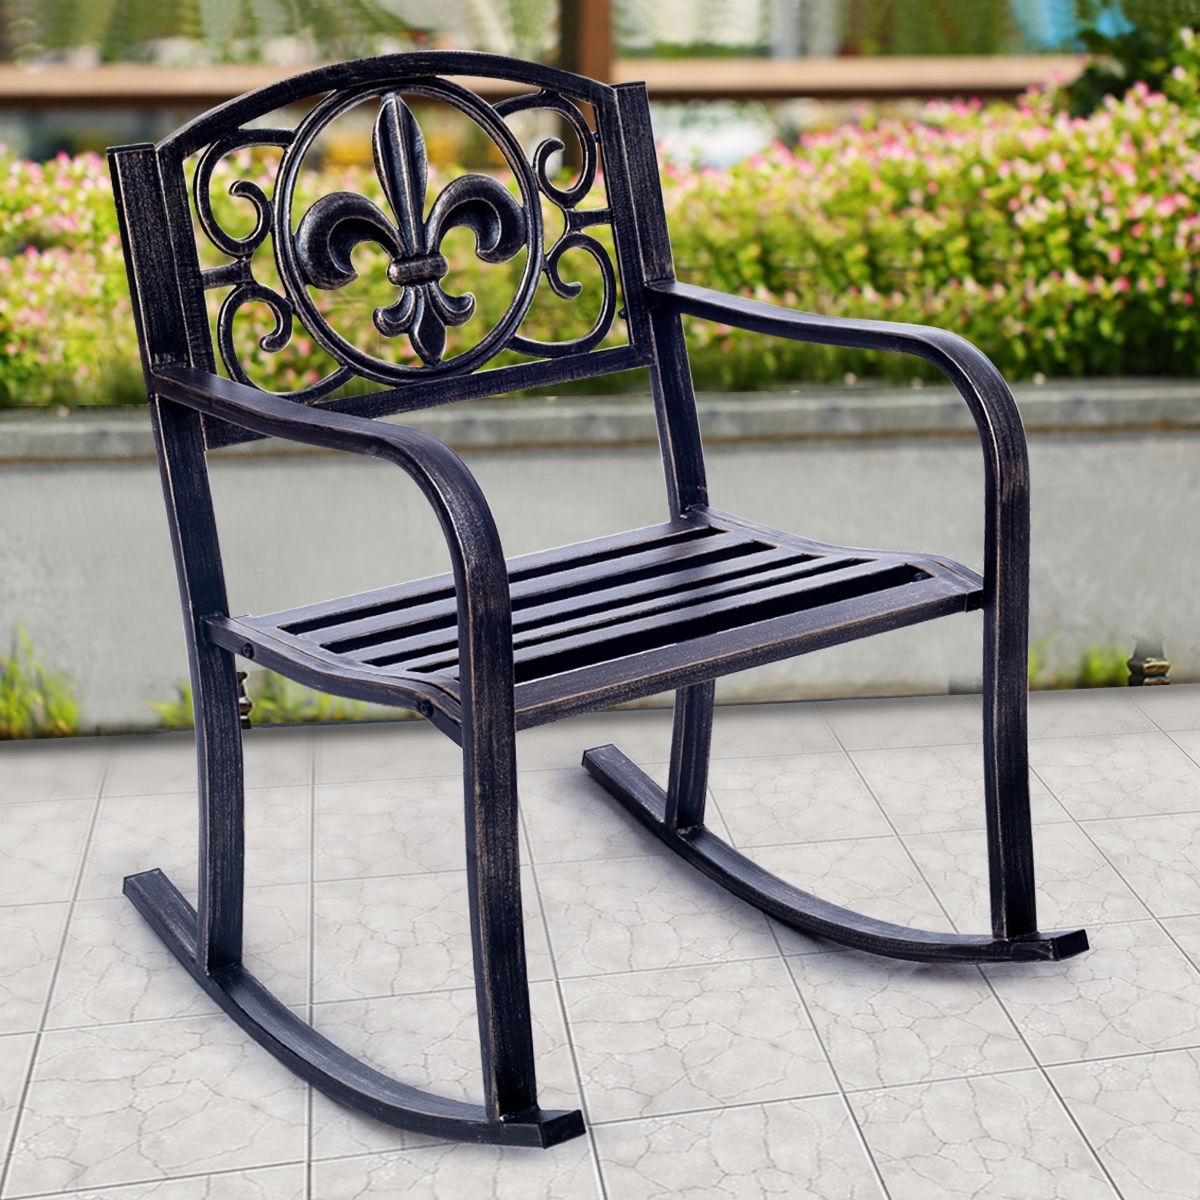 Costway: Costway Patio Metal Rocking Chair Porch Seat Deck Outdoor With Patio Metal Rocking Chairs (View 5 of 15)